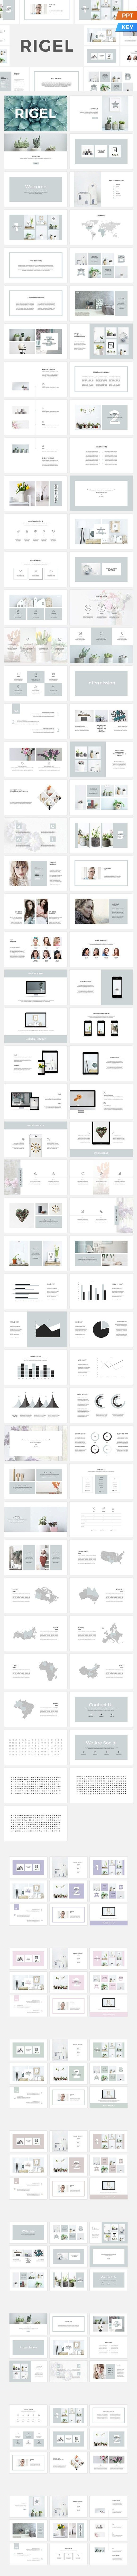 Rigel Presentation Template. PowerPoint Templates. $18.00